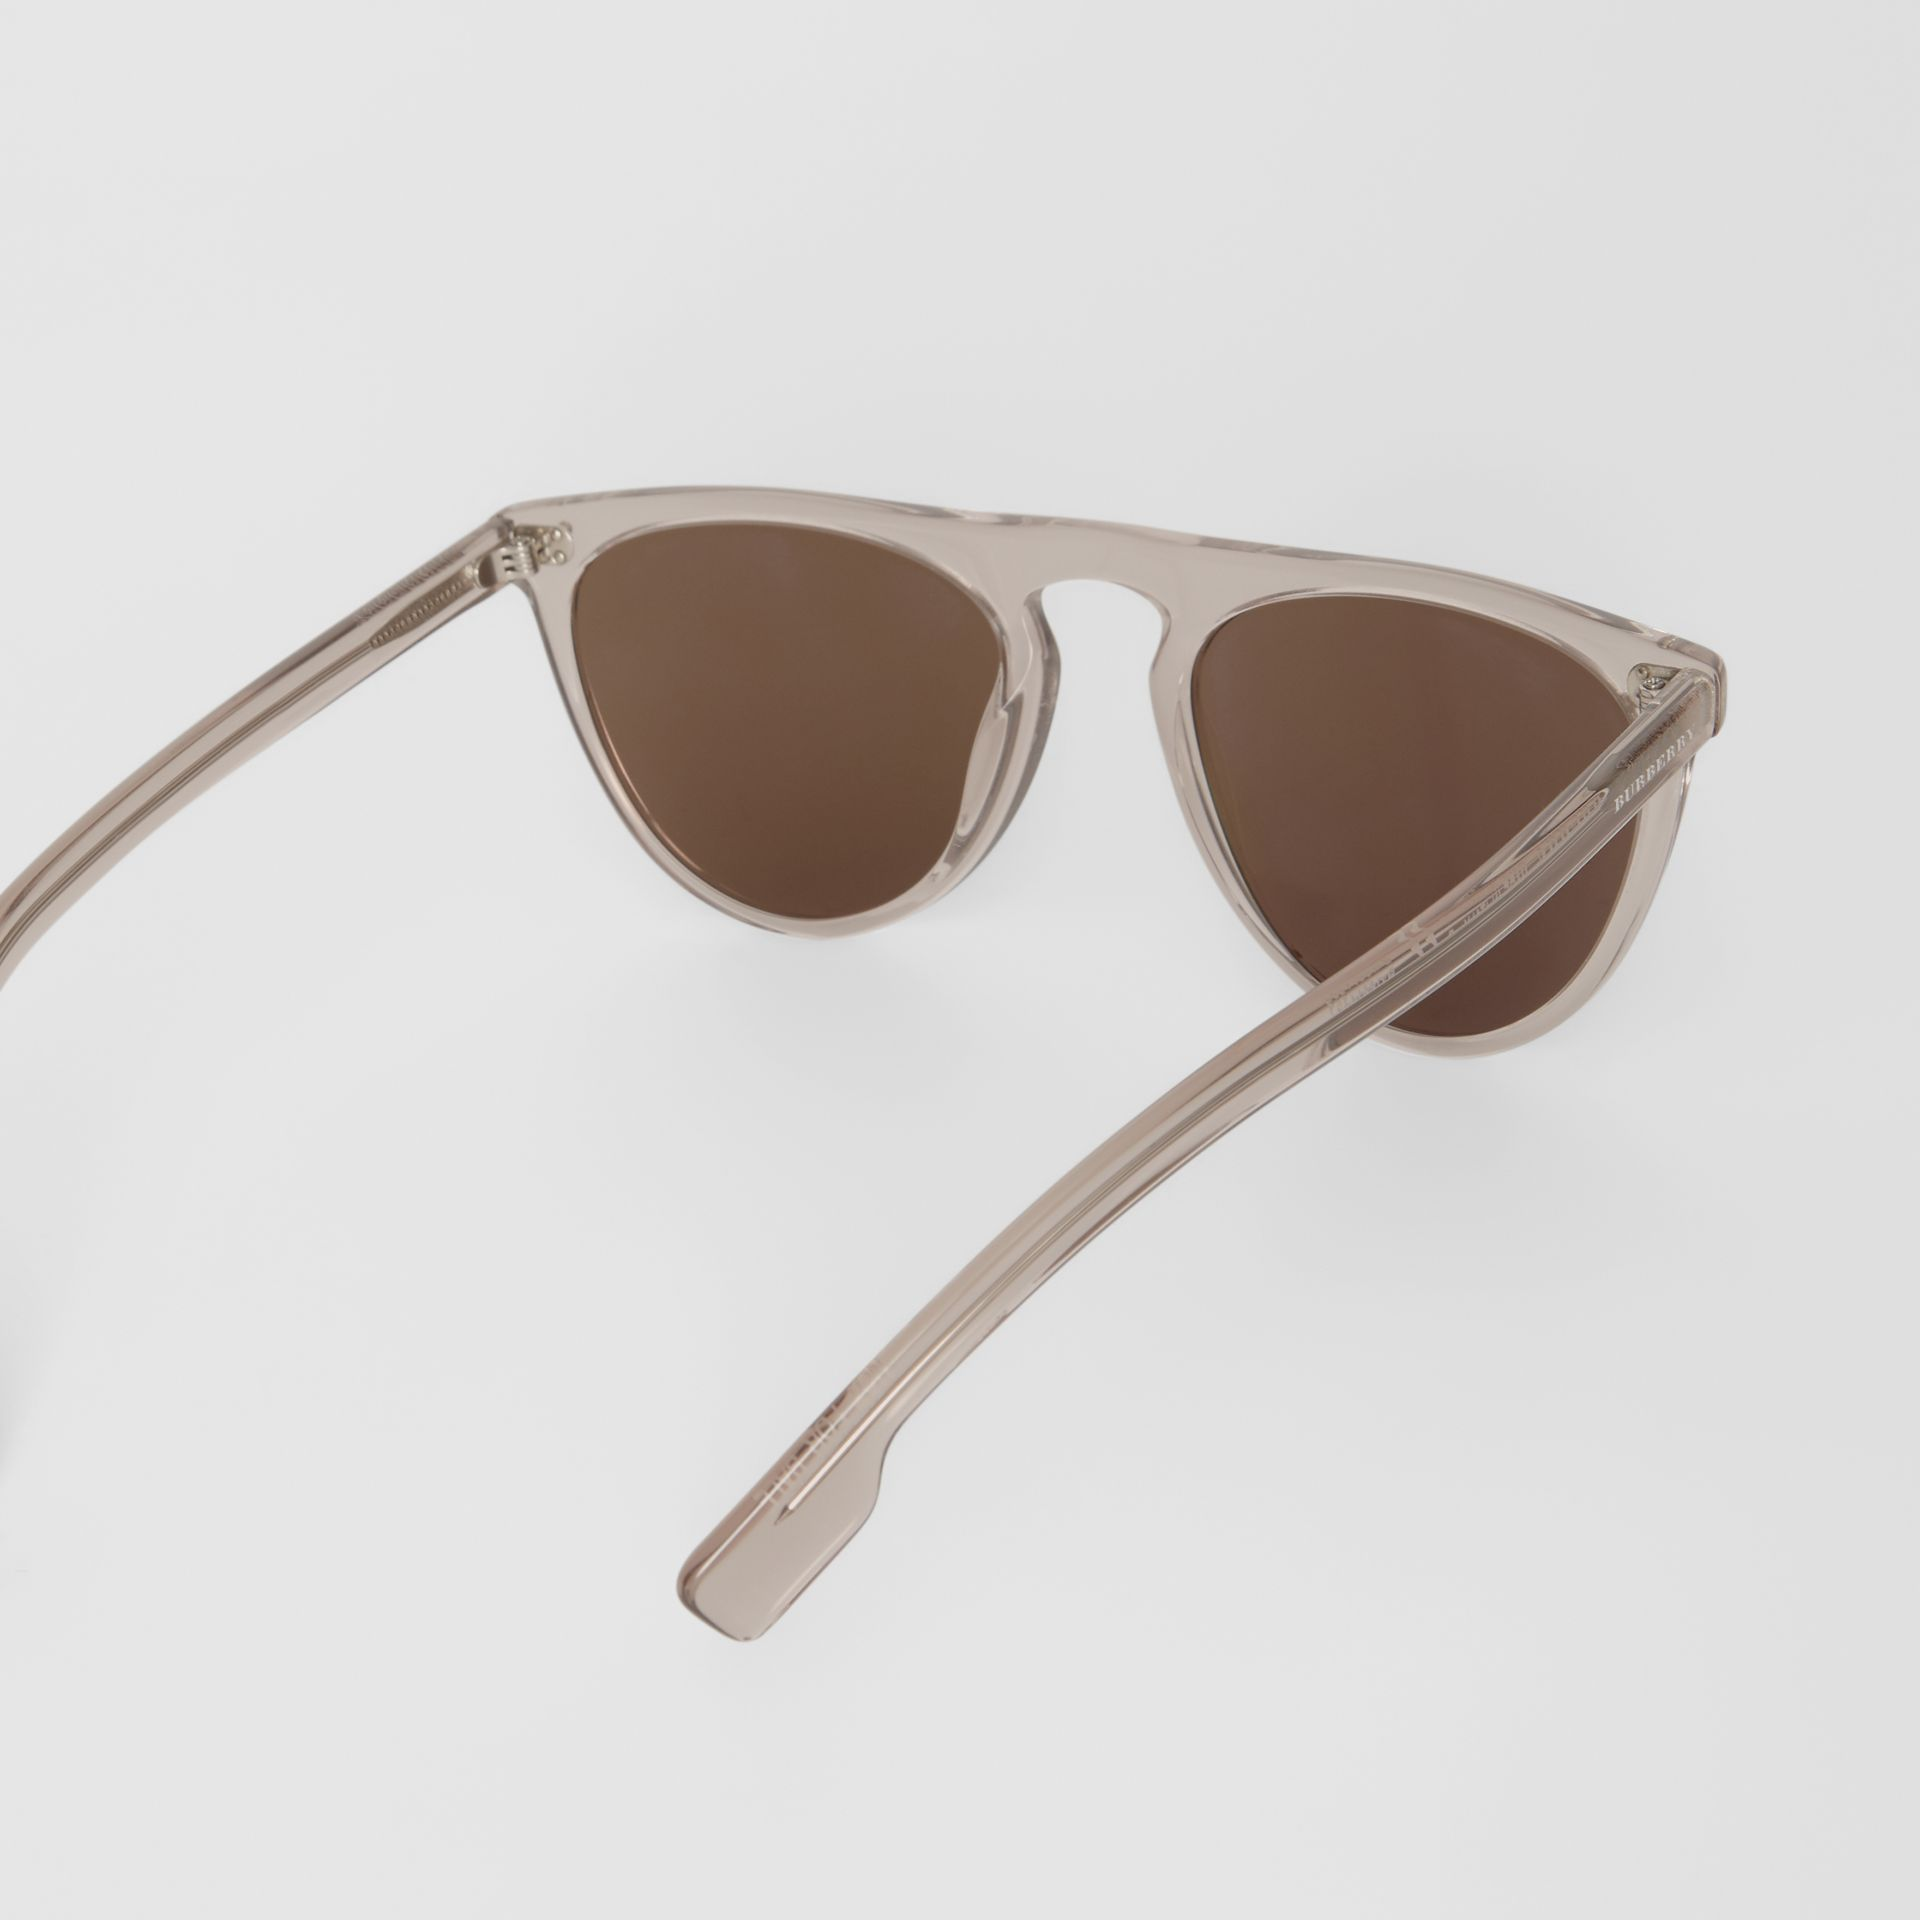 Keyhole D-shaped Sunglasses in Grey - Men | Burberry Australia - gallery image 4